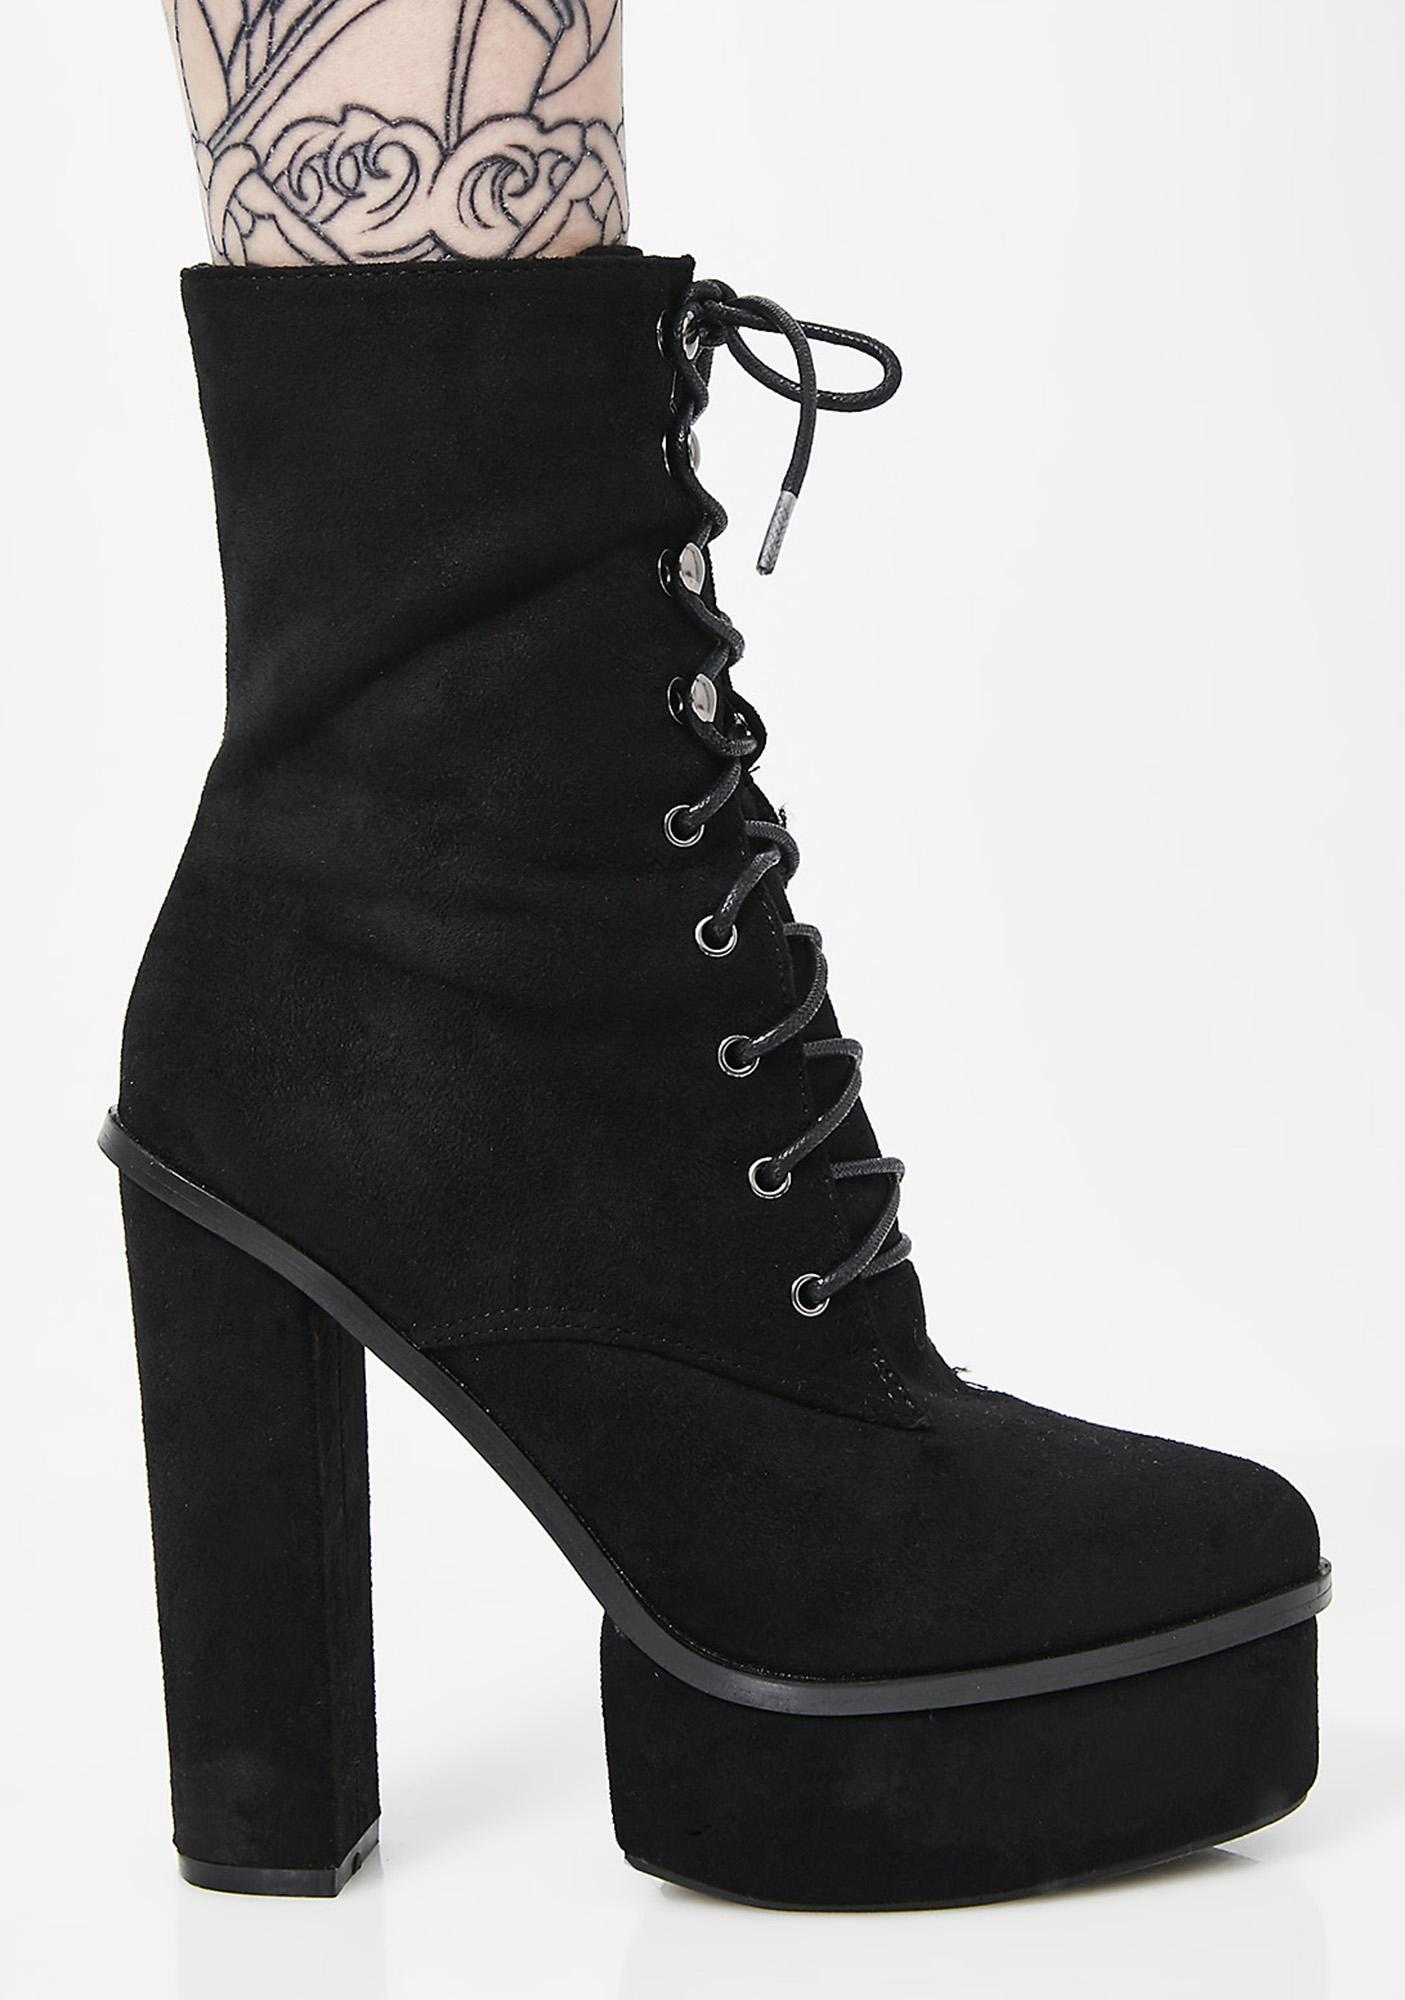 All In It Platform Booties